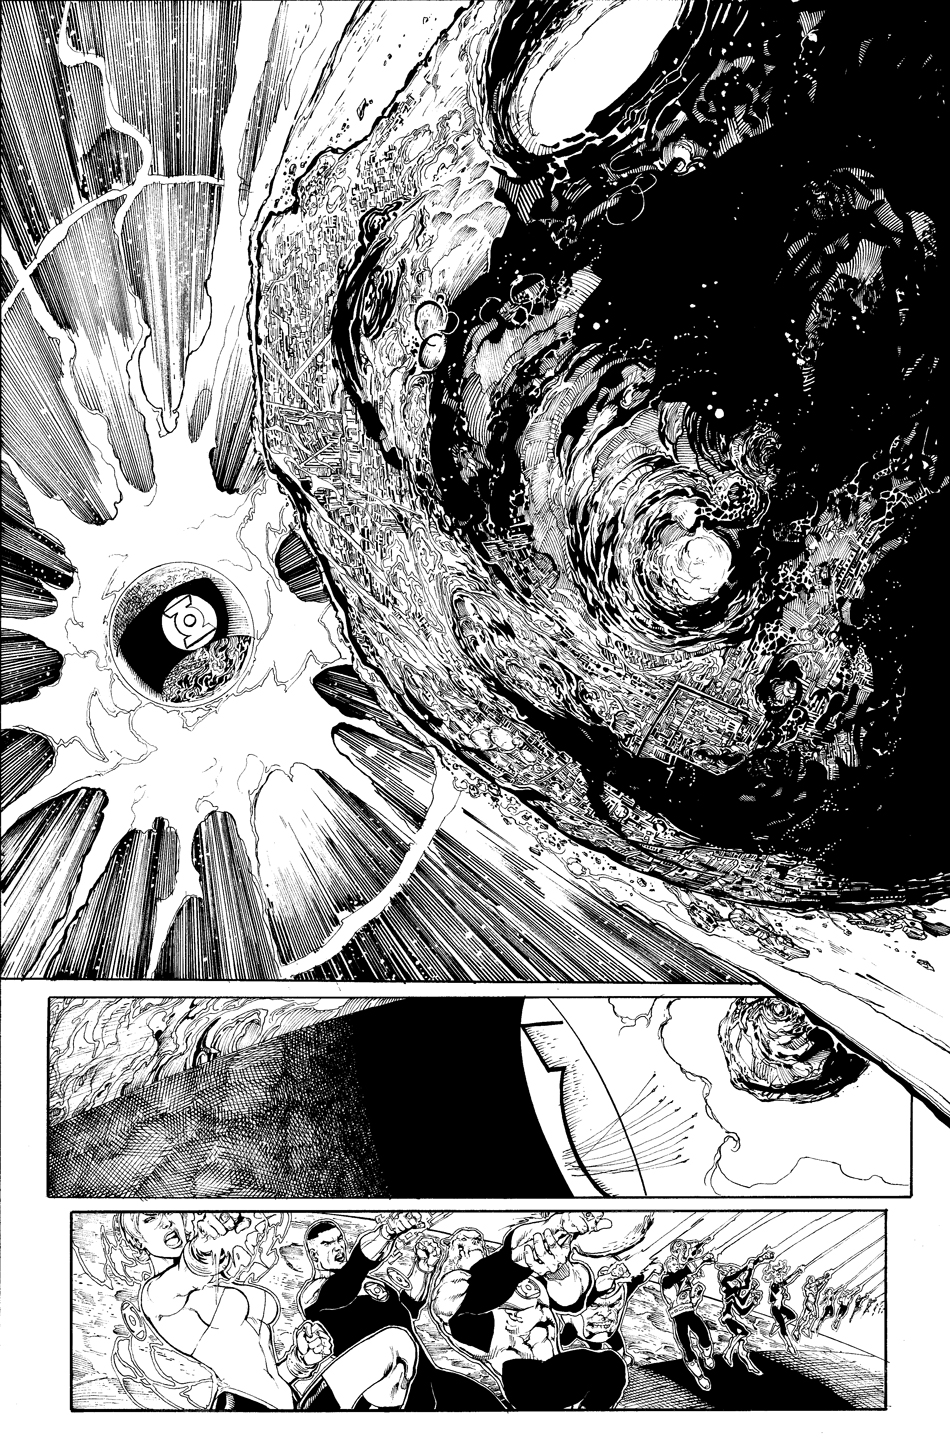 GLCEOO_1_inks